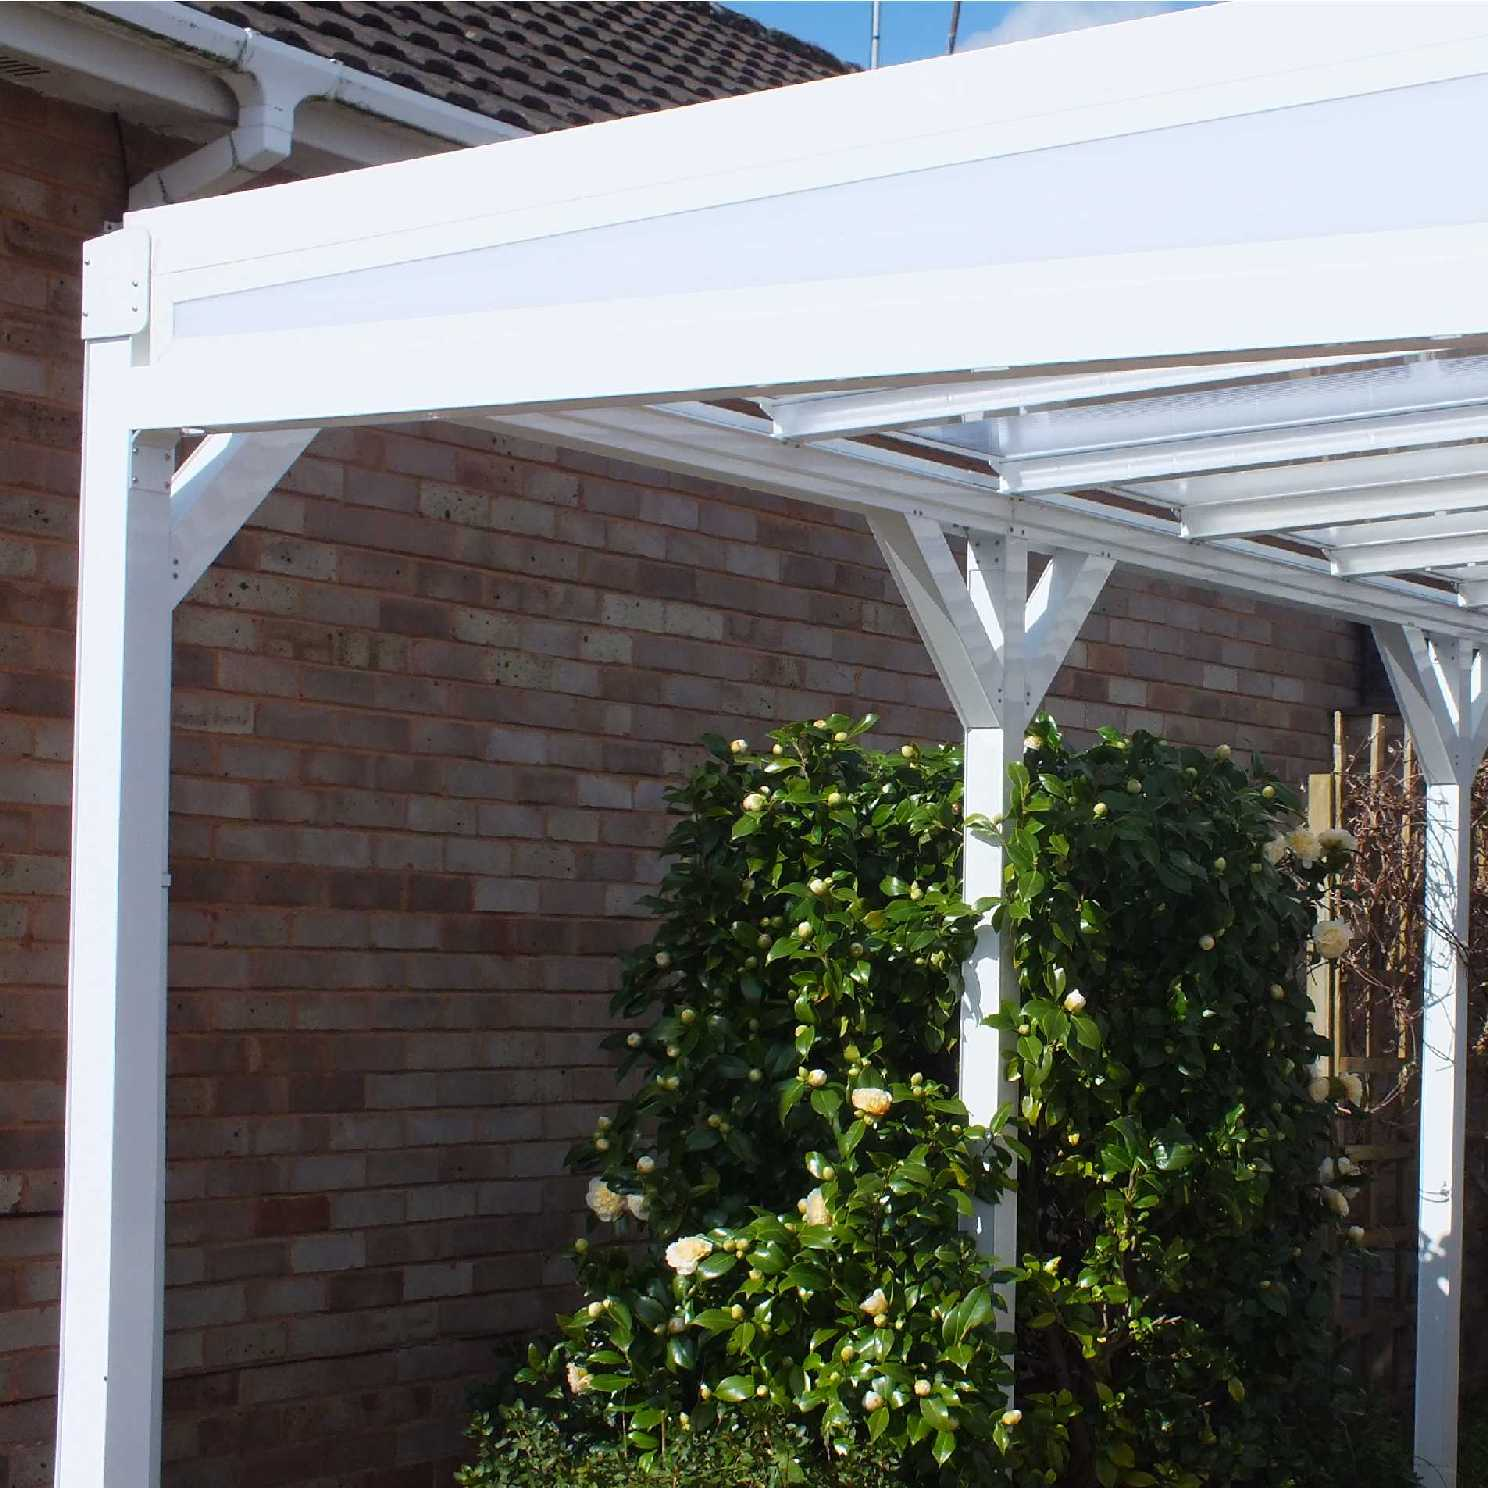 Omega Smart Lean-To Canopy with 16mm Polycarbonate Glazing - 10.2m (W) x 4.5m (P), (5) Supporting Posts from Omega Build